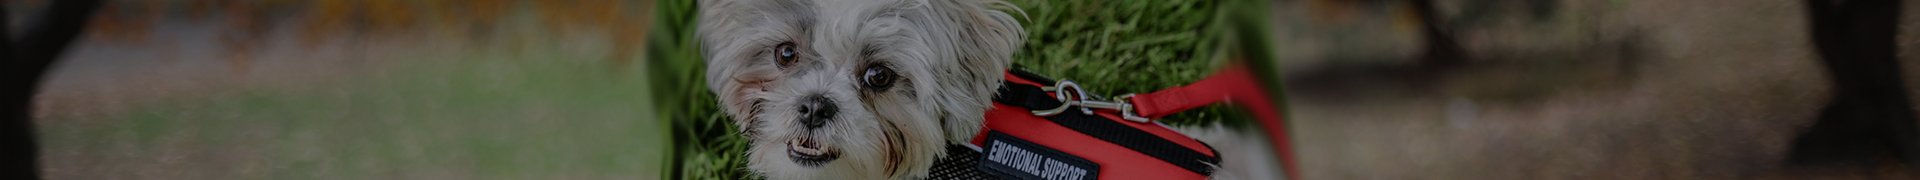 Emotional Support Animal Laws |